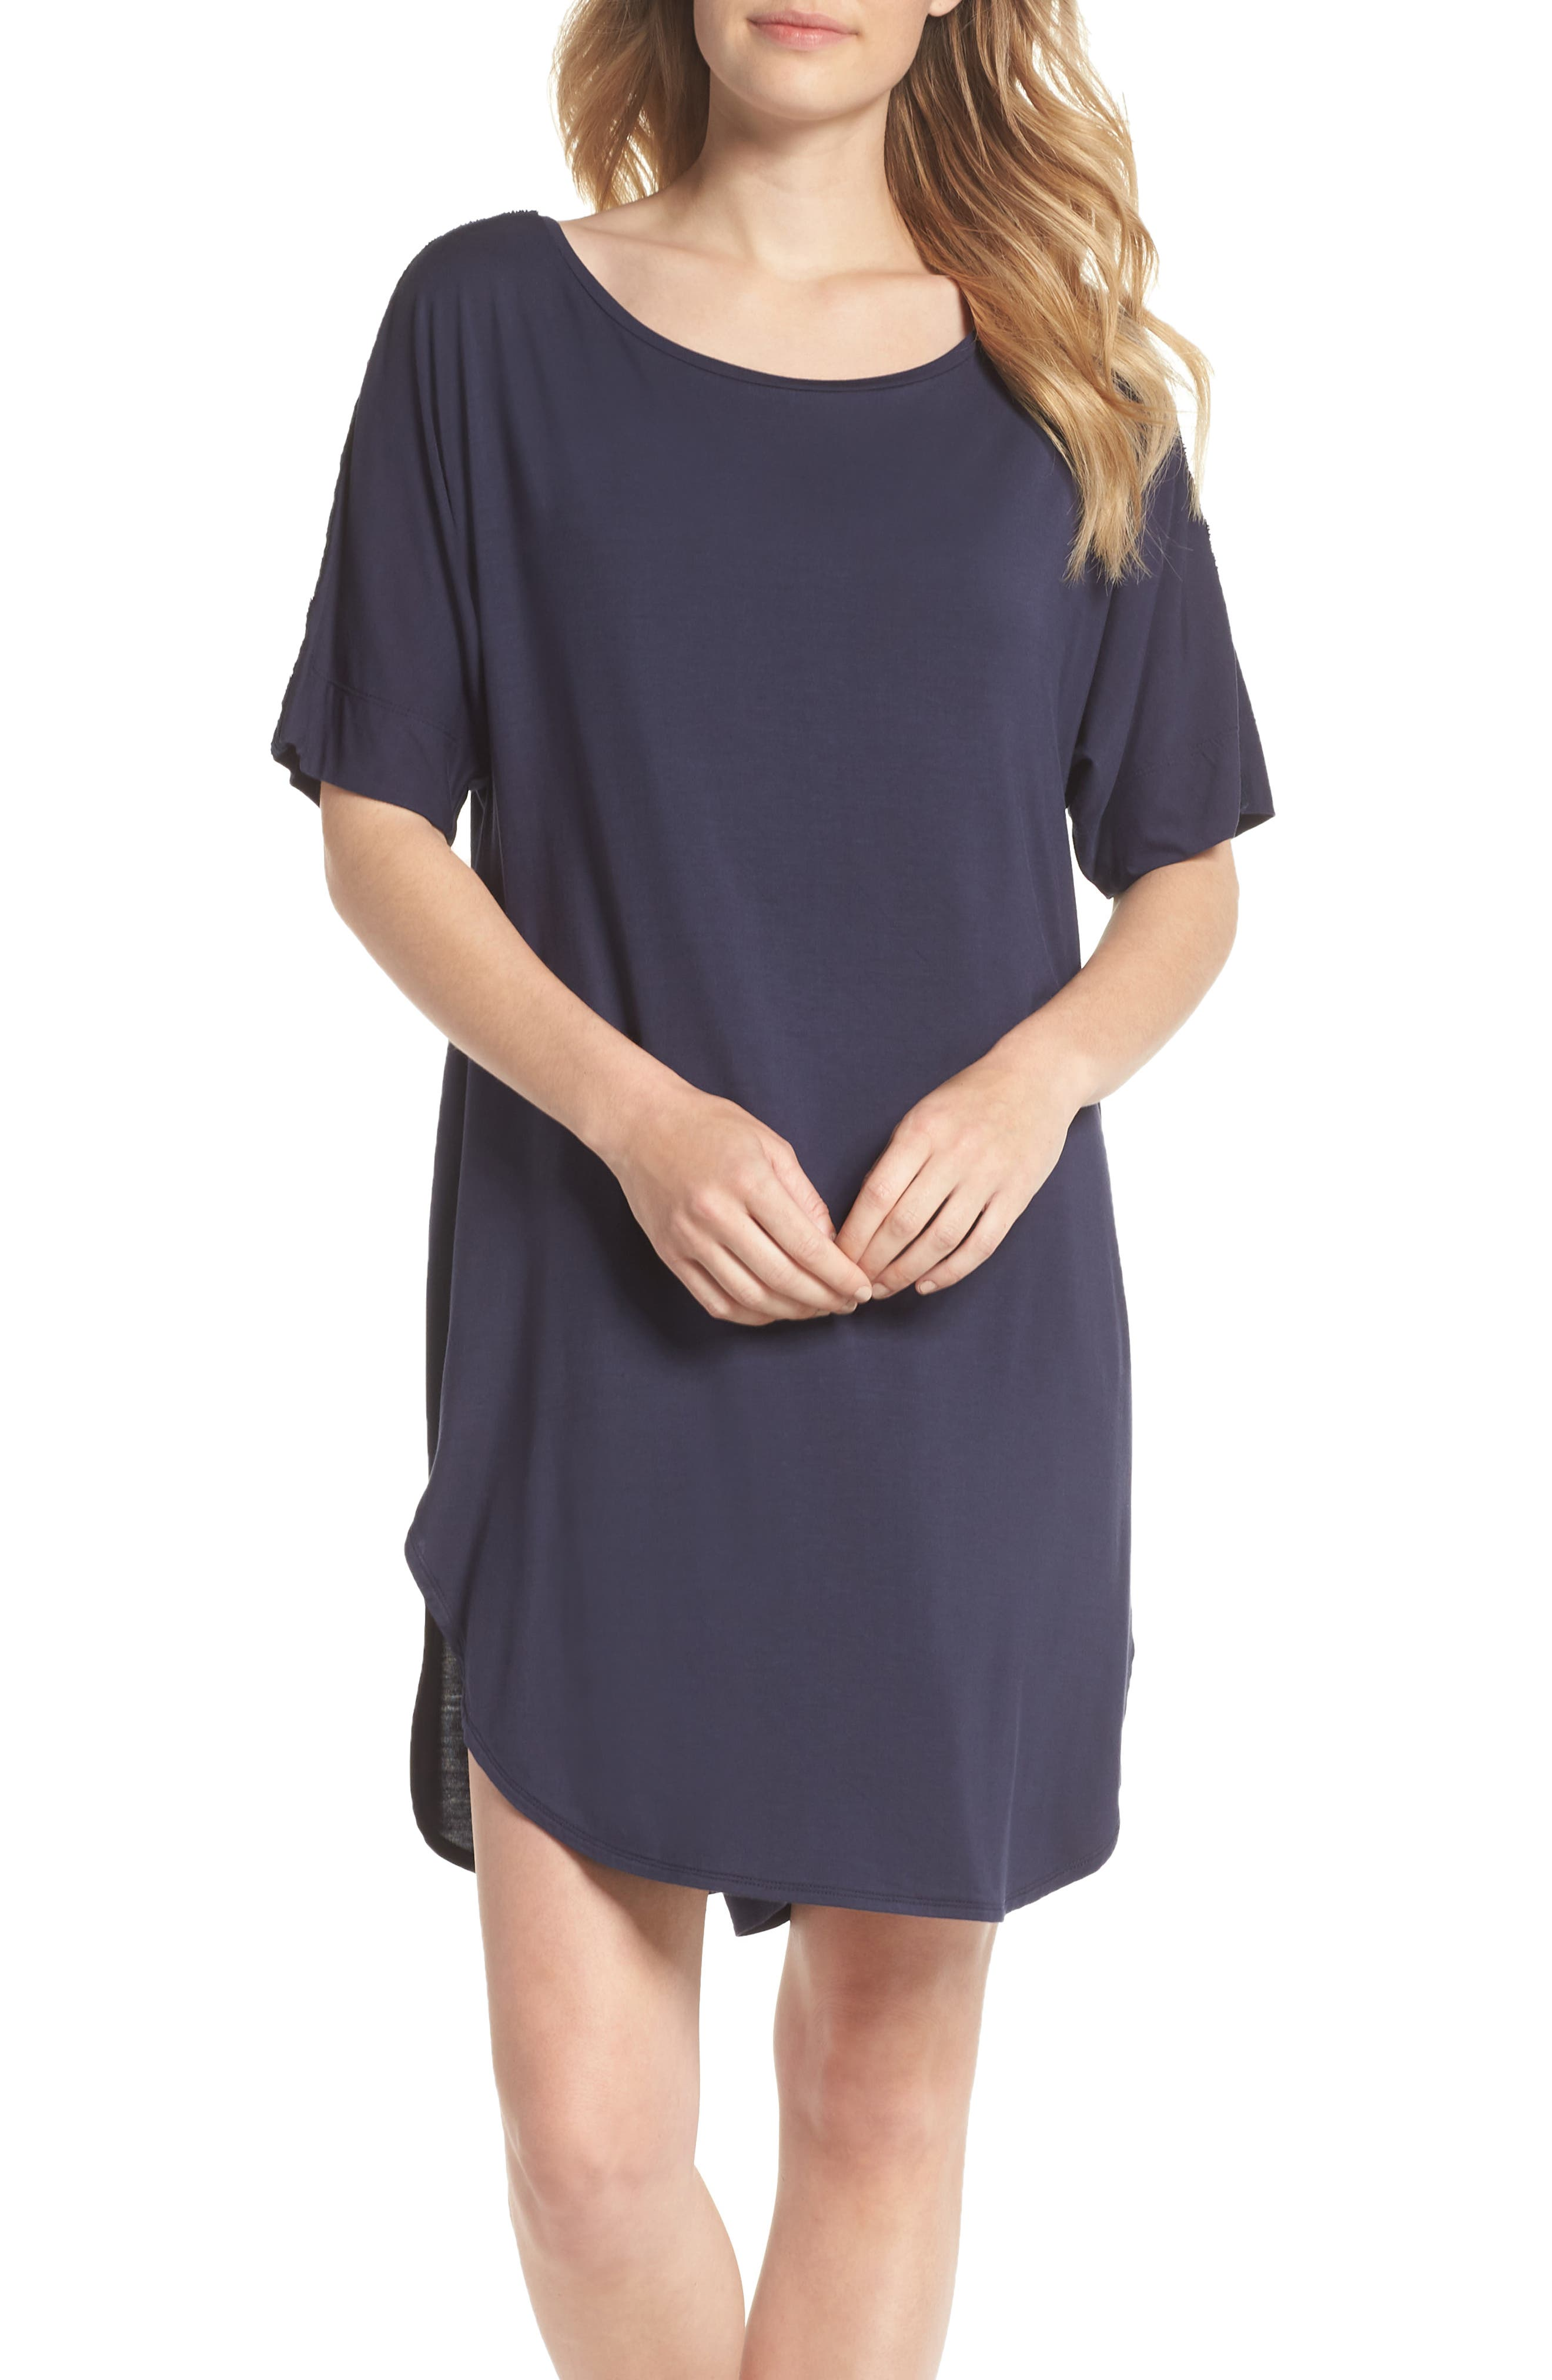 Feathers Essential Sleep Shirt,                             Main thumbnail 1, color,                             NIGHT BLUE